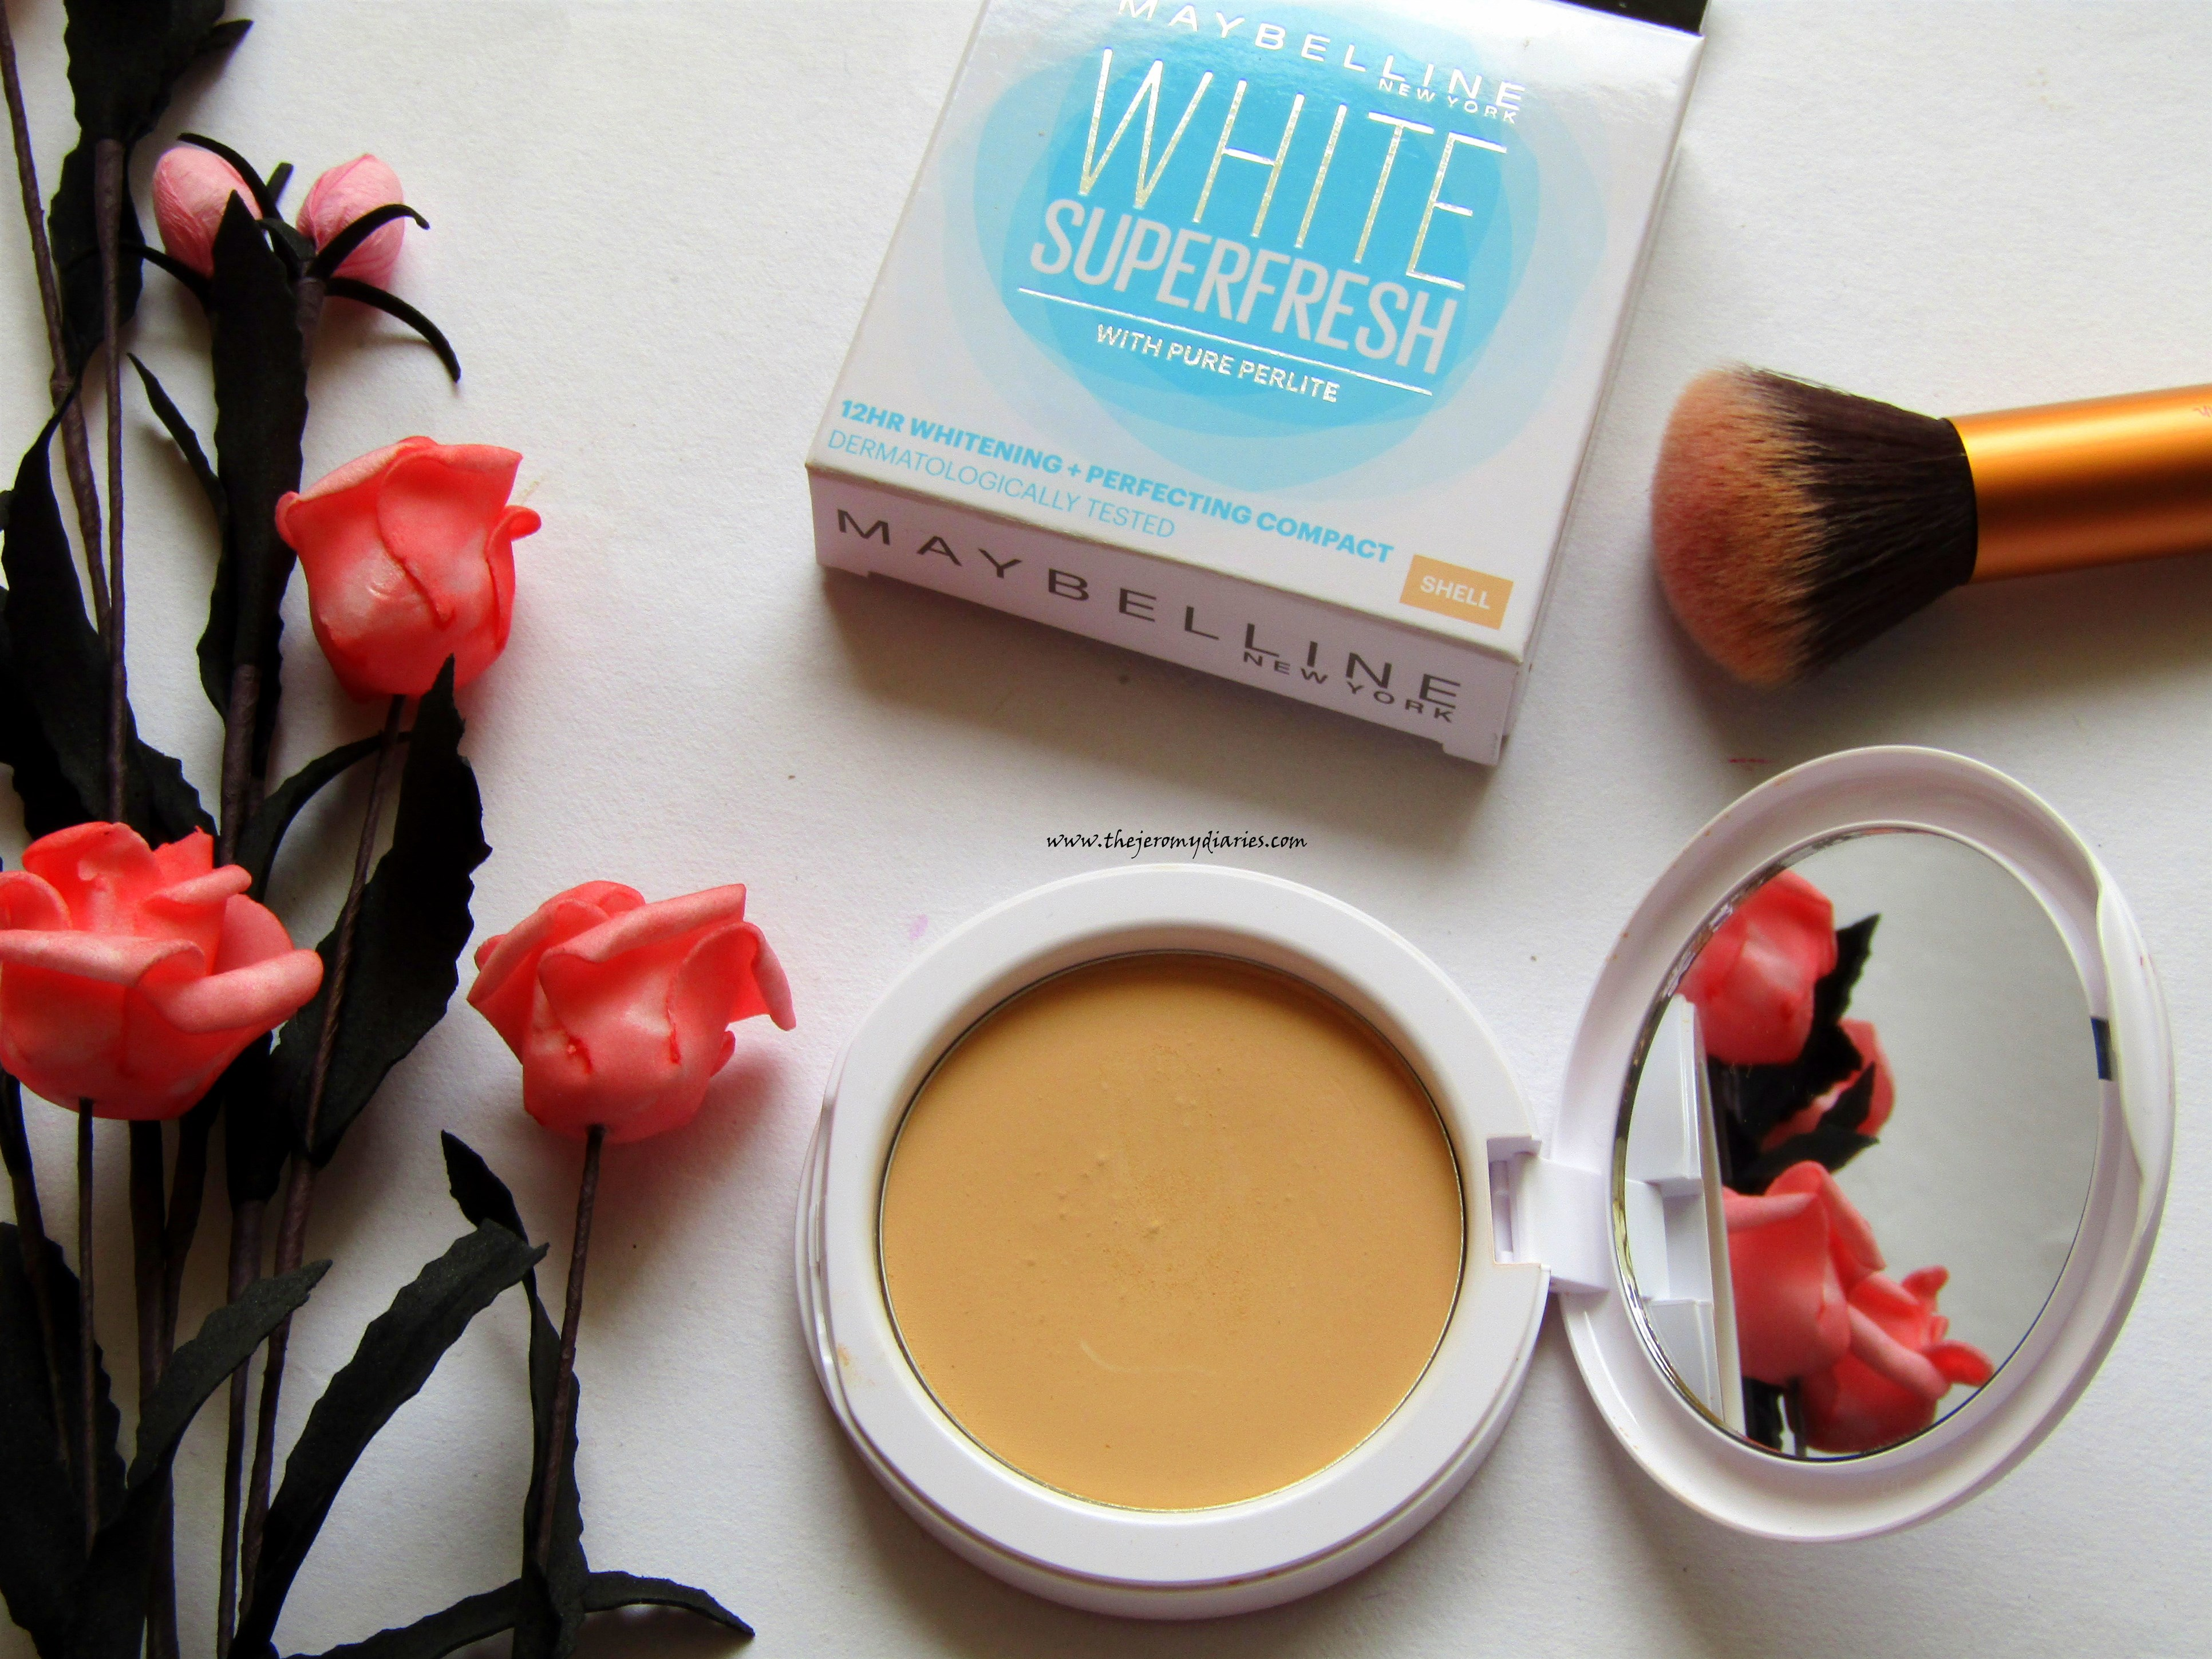 maybelline white super fresh compact shell packaging review the jeromy diaries (3864 x 2898)